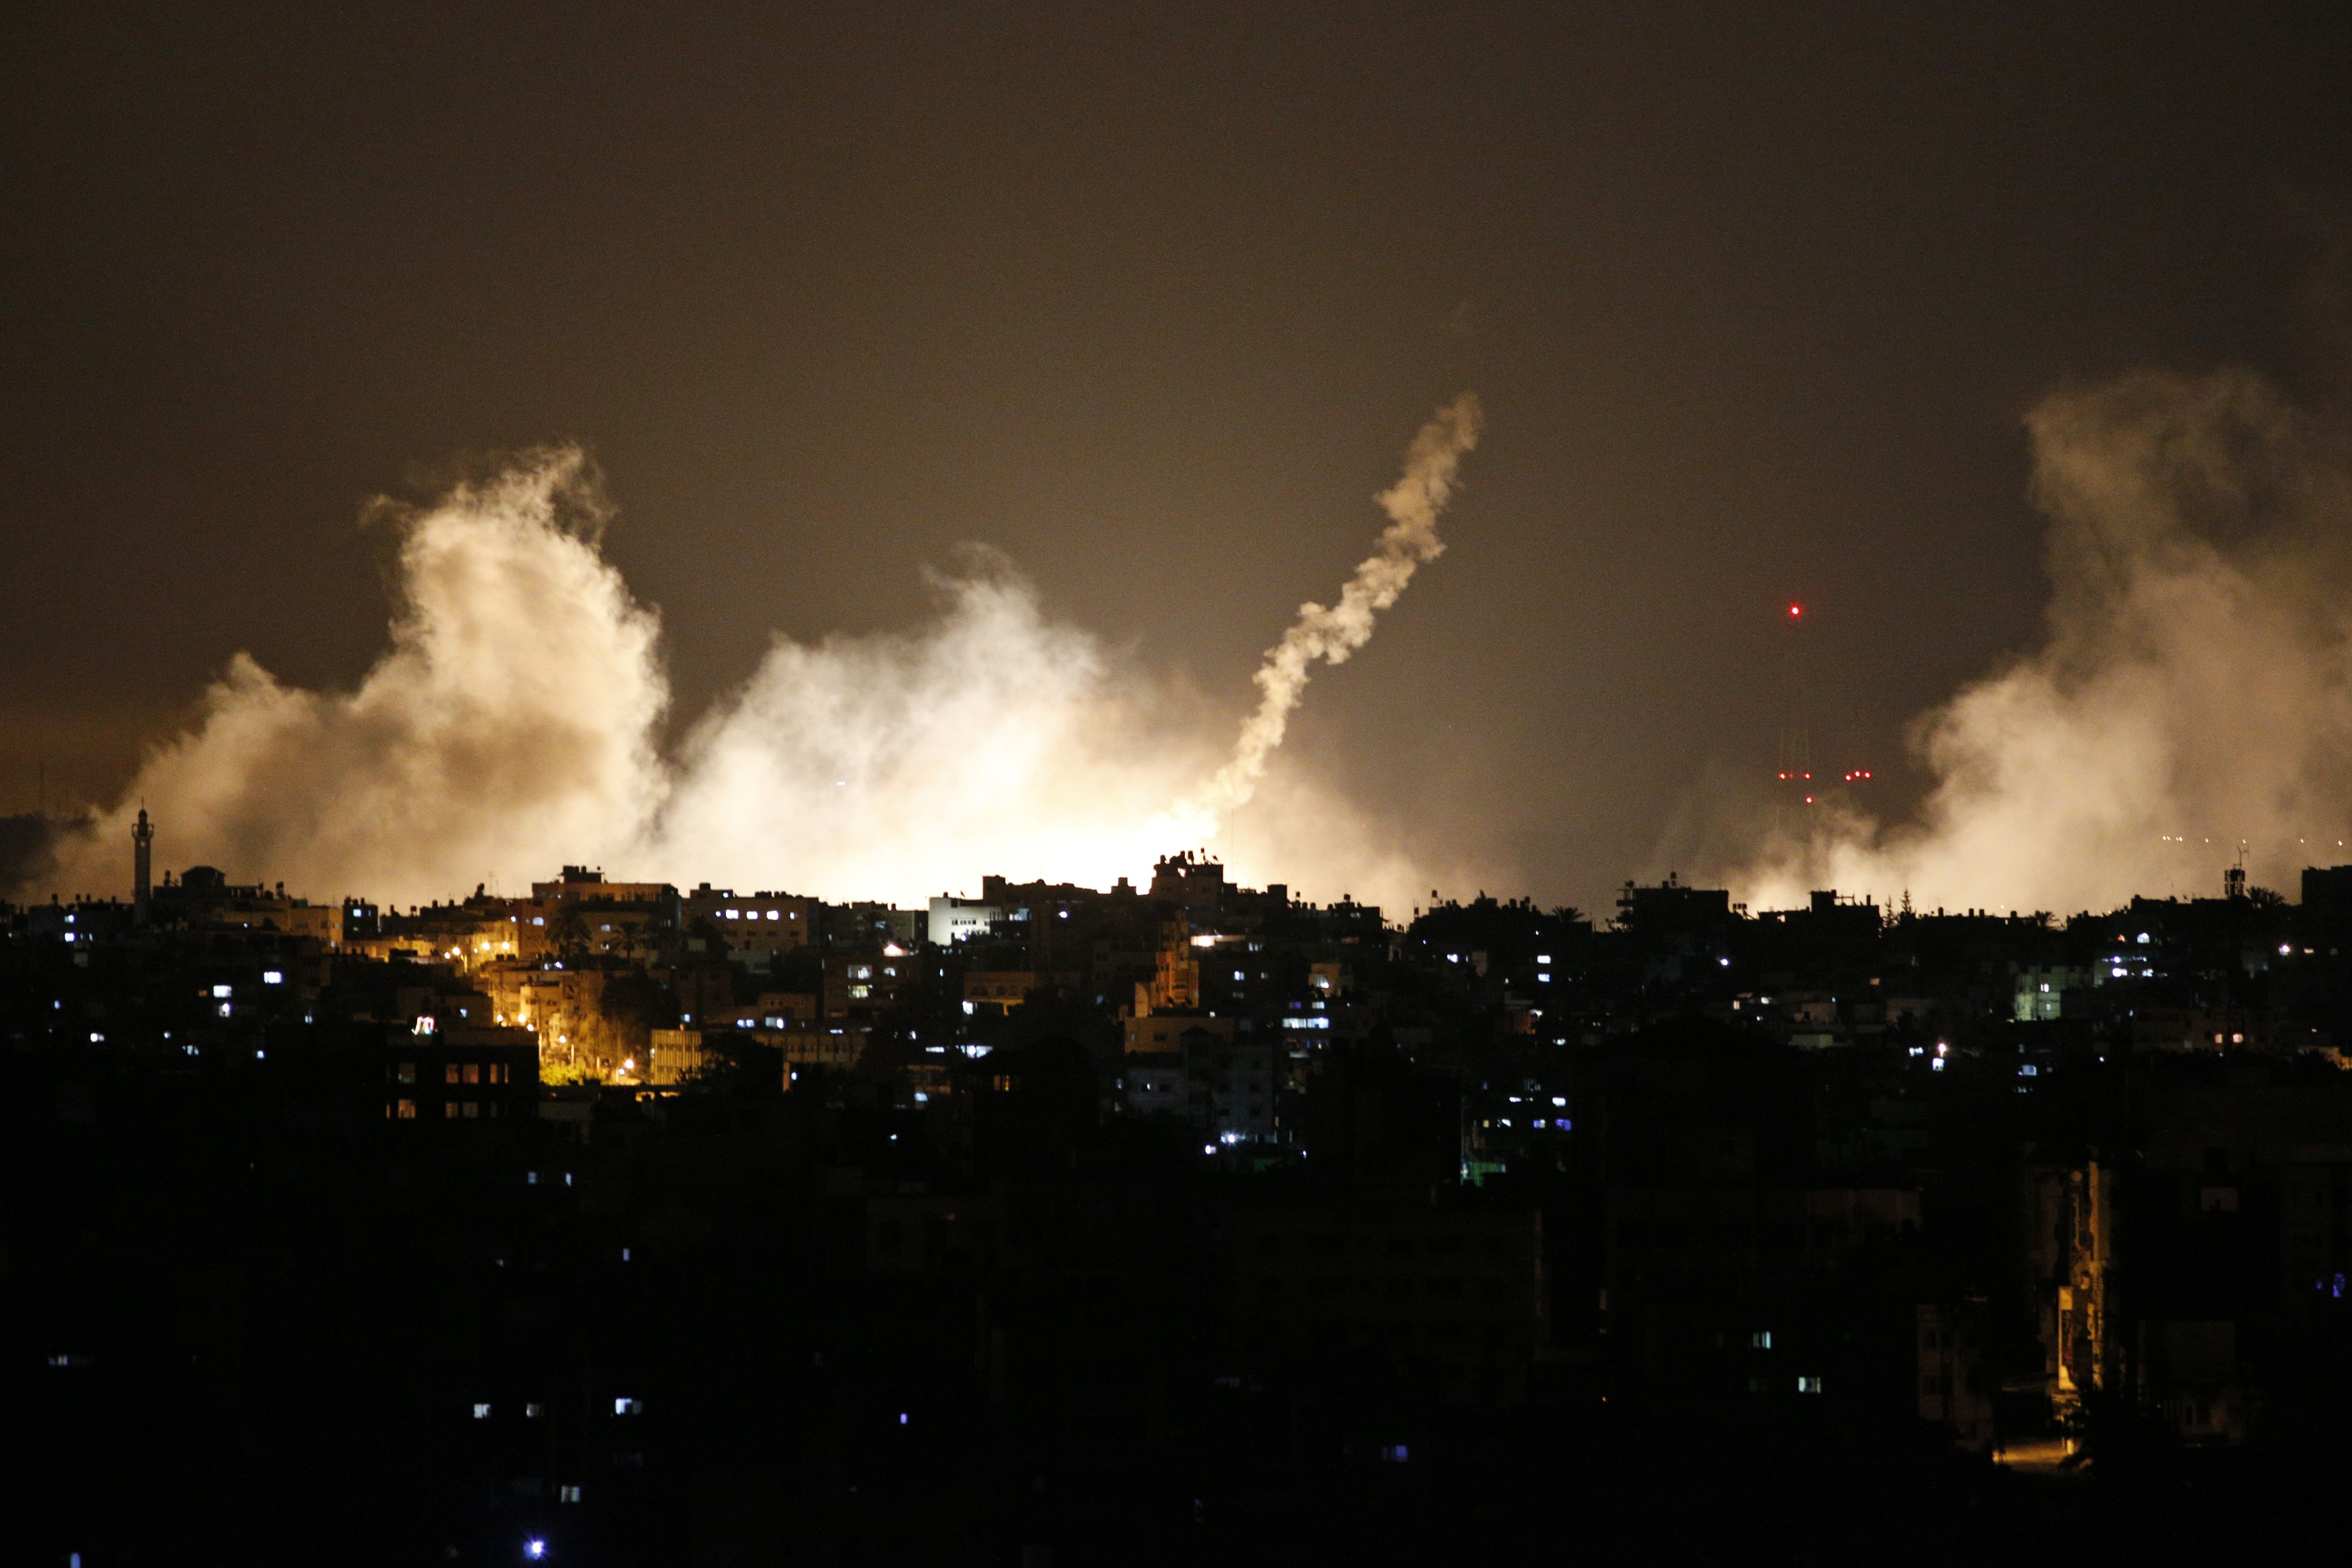 Smoke from flares rises in the sky in Gaza City, in the northern Gaza Strip on July 17, 2014.